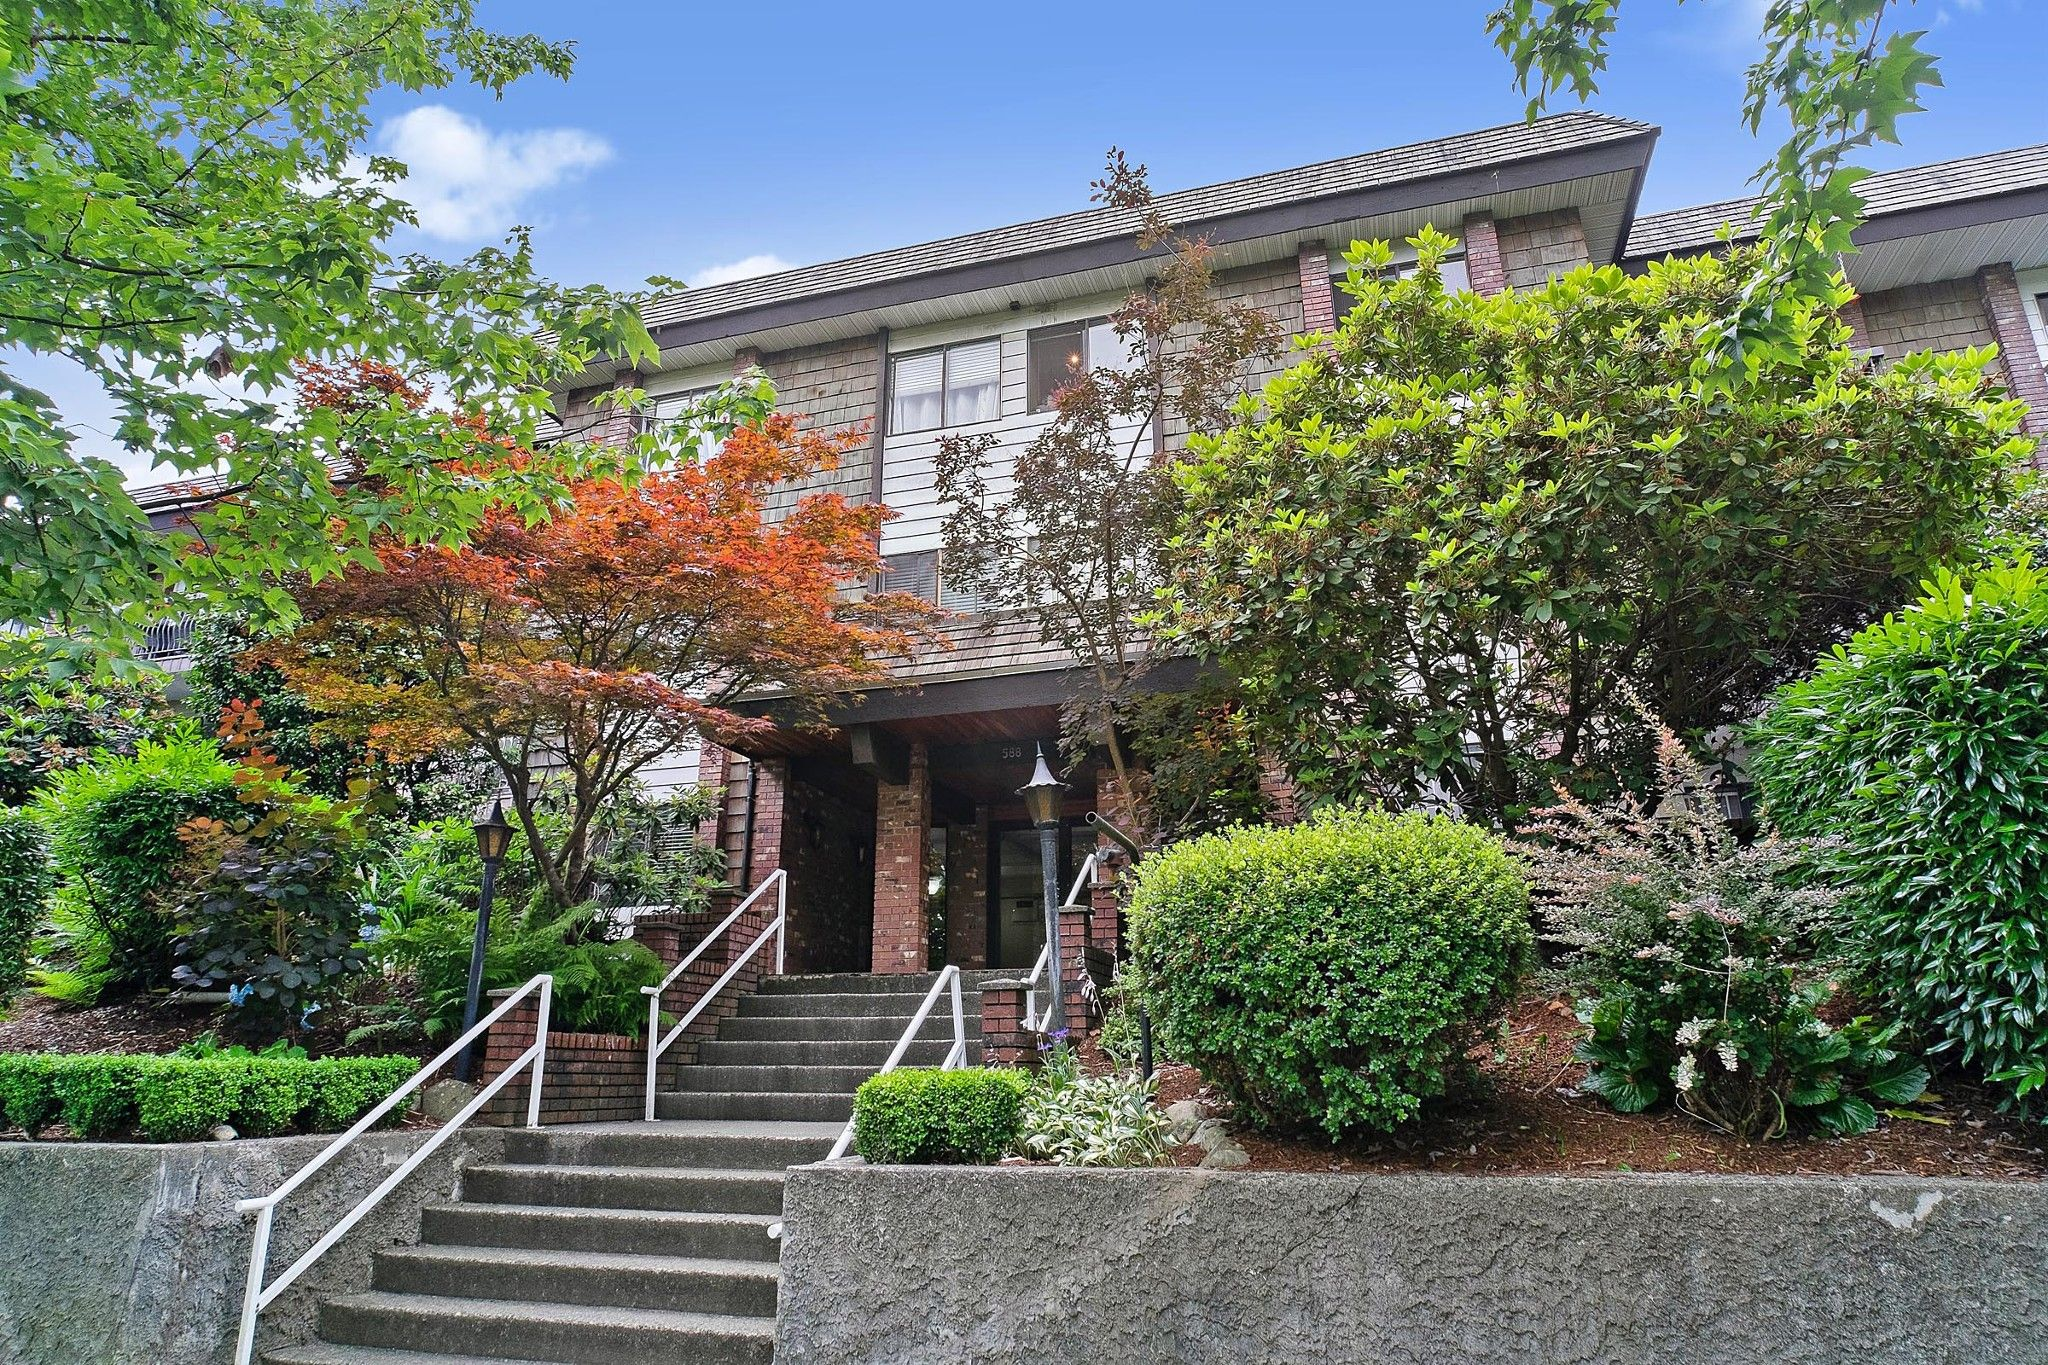 """Main Photo: 346 588 E 5TH Avenue in Vancouver: Mount Pleasant VE Condo for sale in """"MCGREGOR HOUSE"""" (Vancouver East)  : MLS®# R2477608"""